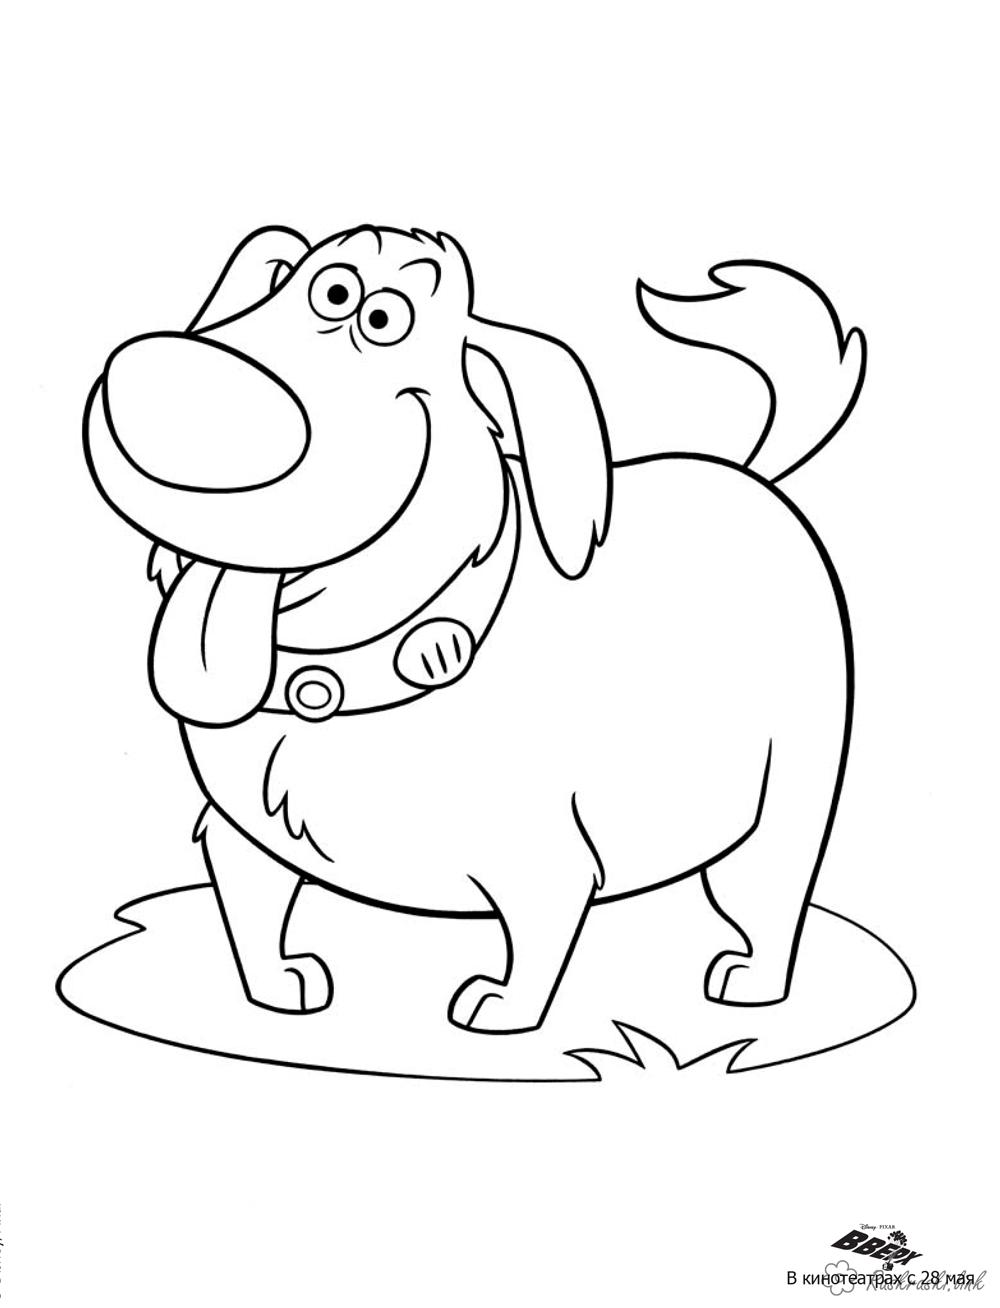 Coloring Up coloring pages cartoons, cartoon coloring pages up, Doug, dog